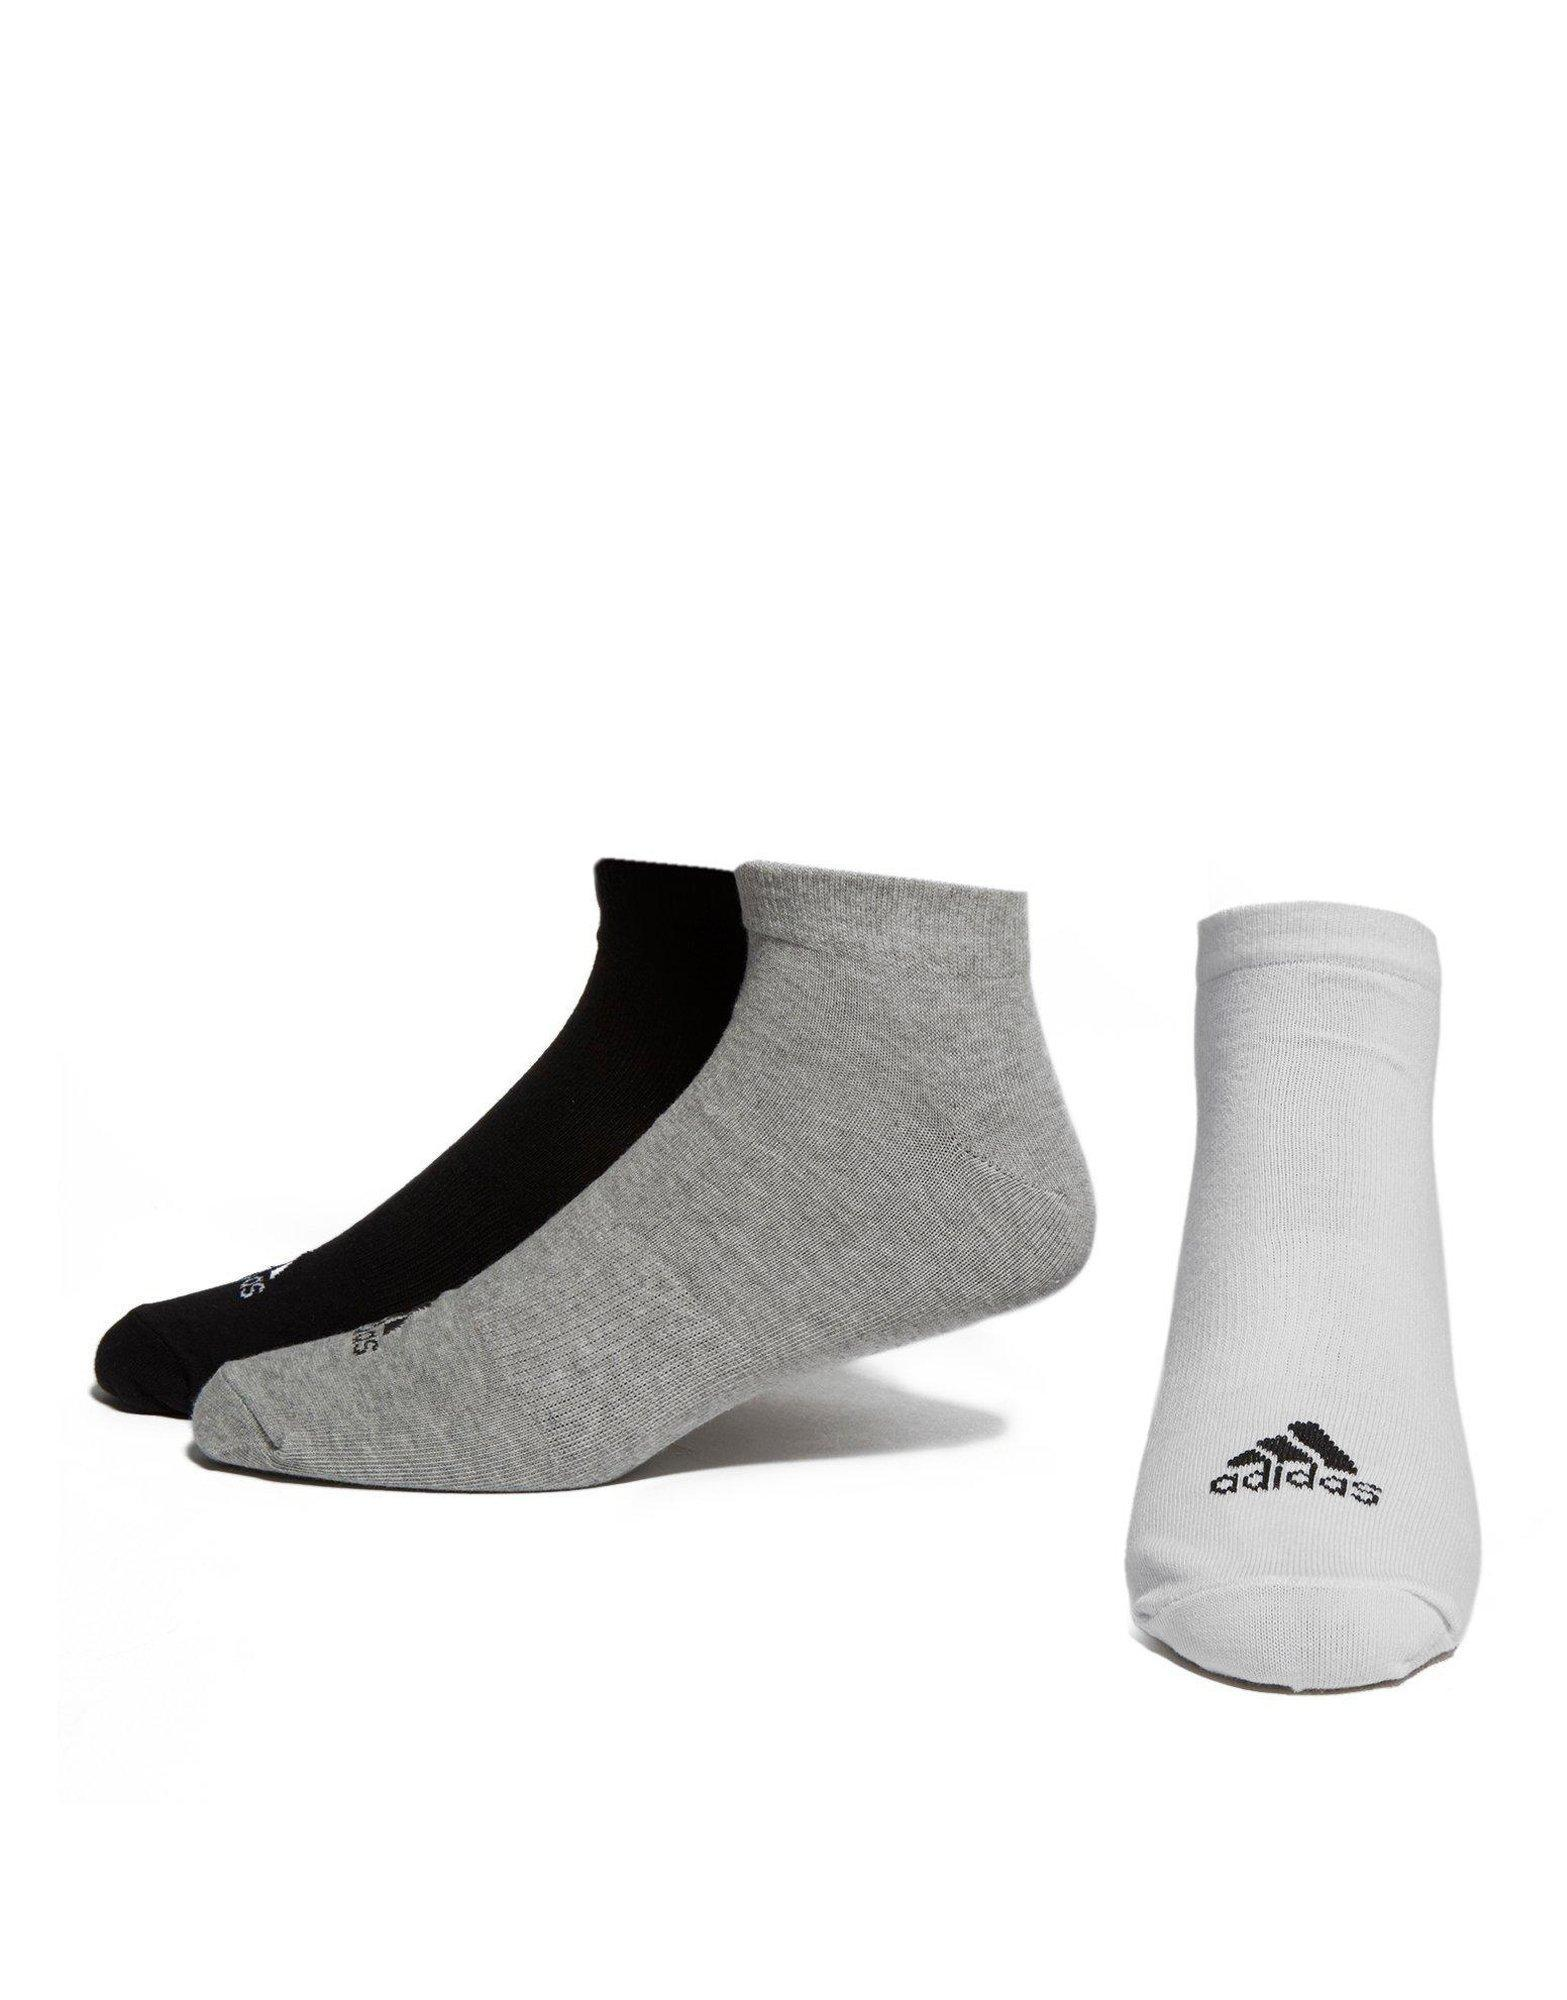 Adidas 3 Pack Invisible Socks  - Accessories Socks